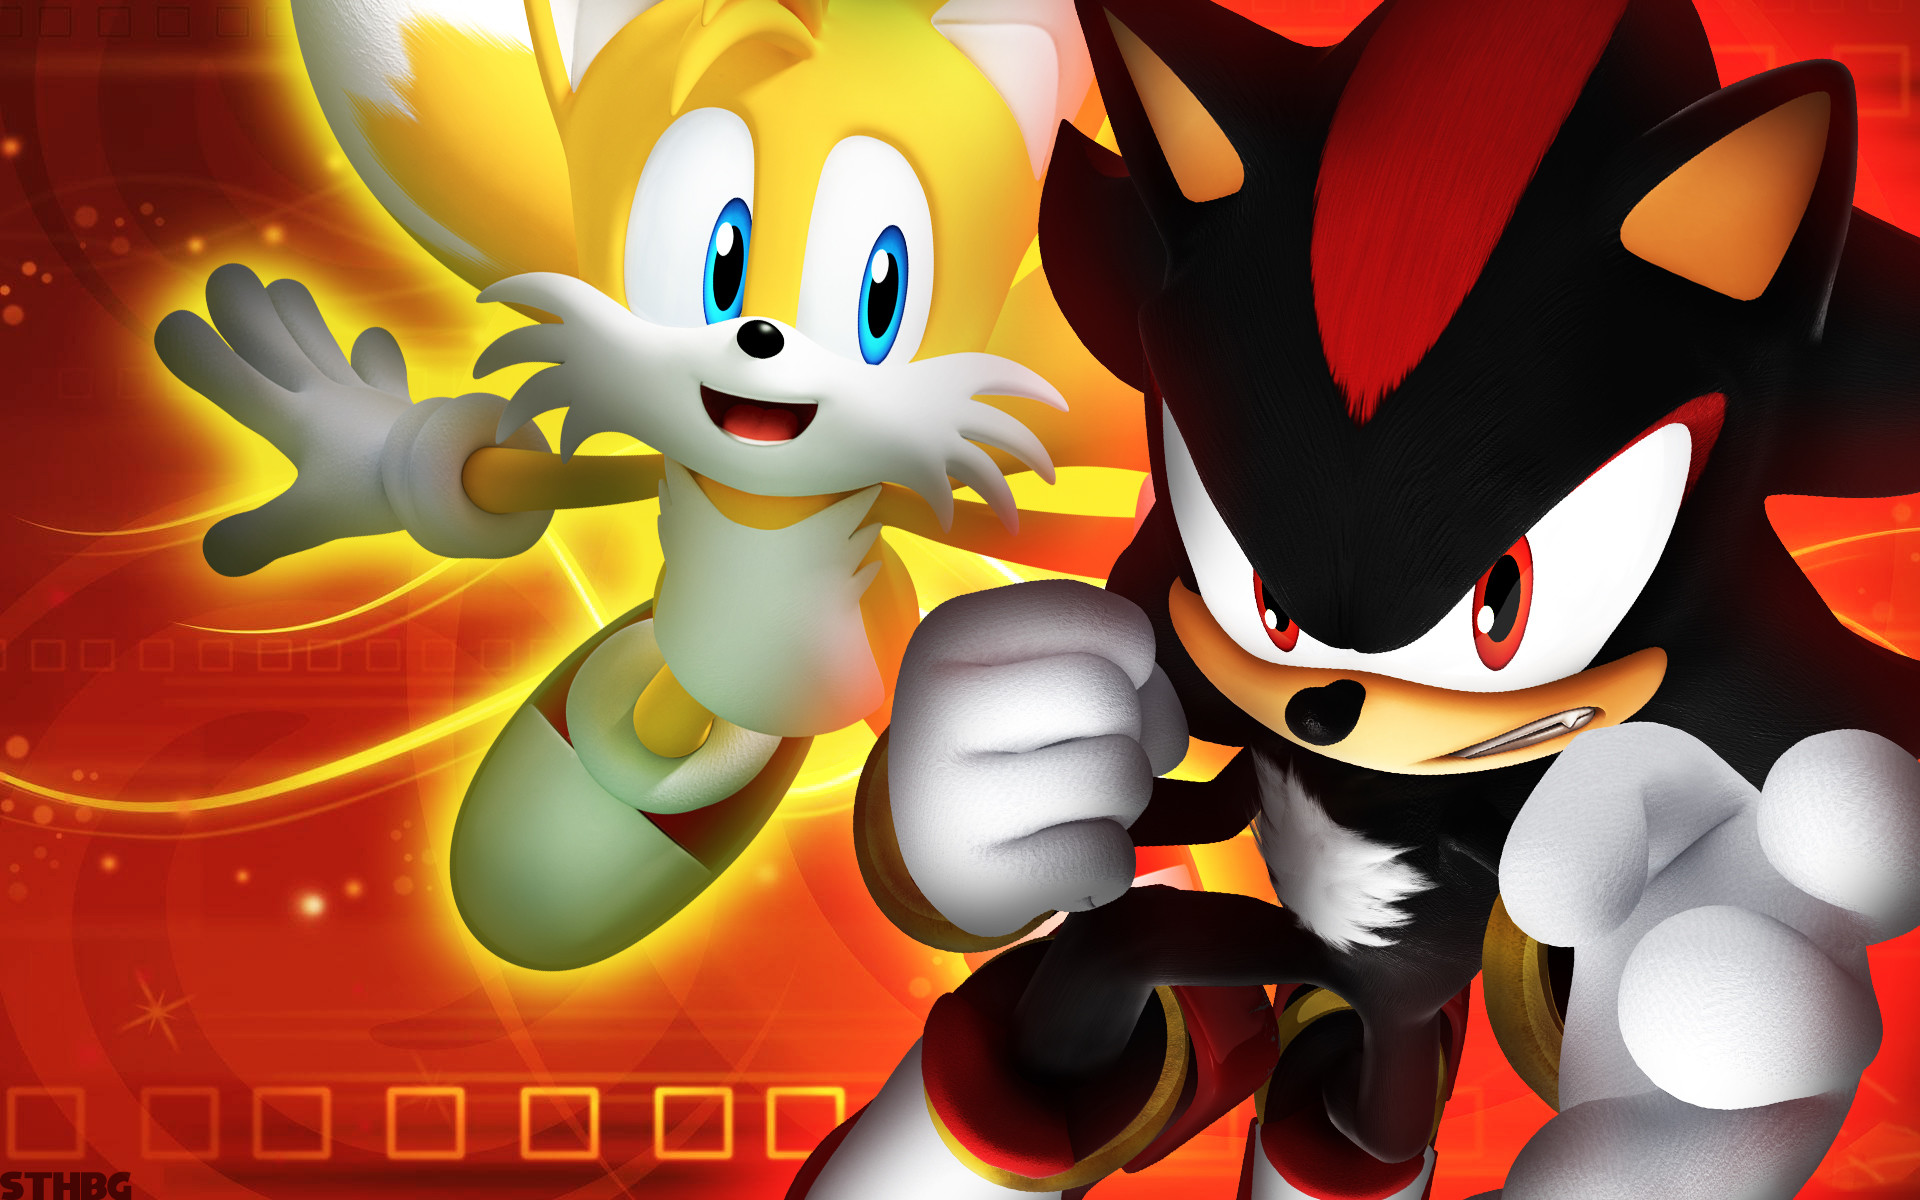 1920x1200 ... SonicTheHedgehogBG Shadow And Tails - Wallpaper by SonicTheHedgehogBG